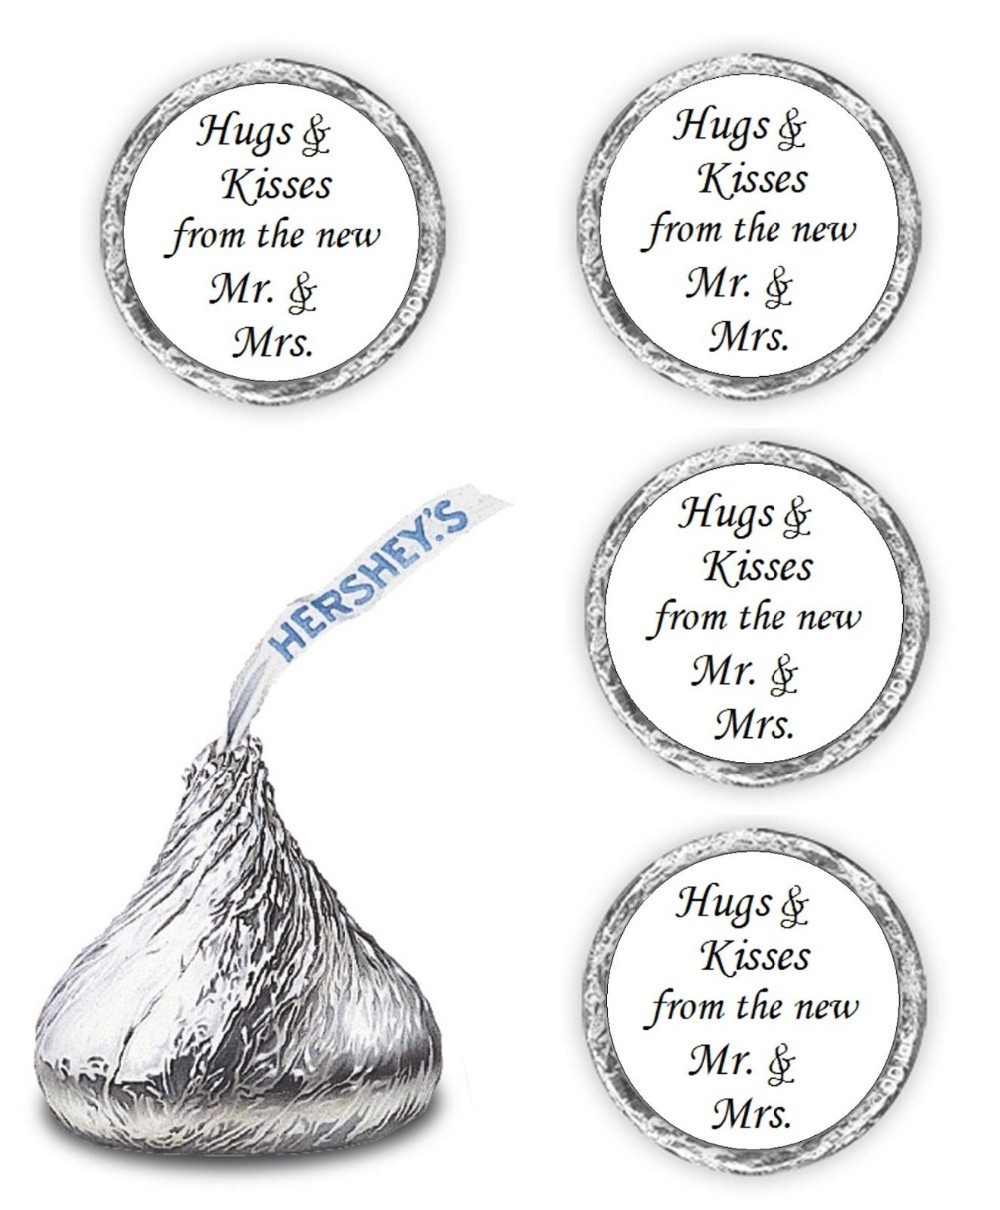 150 Hugs & Kisses from Mr. & Mrs. Hershey Kiss 18mm Personalized ...